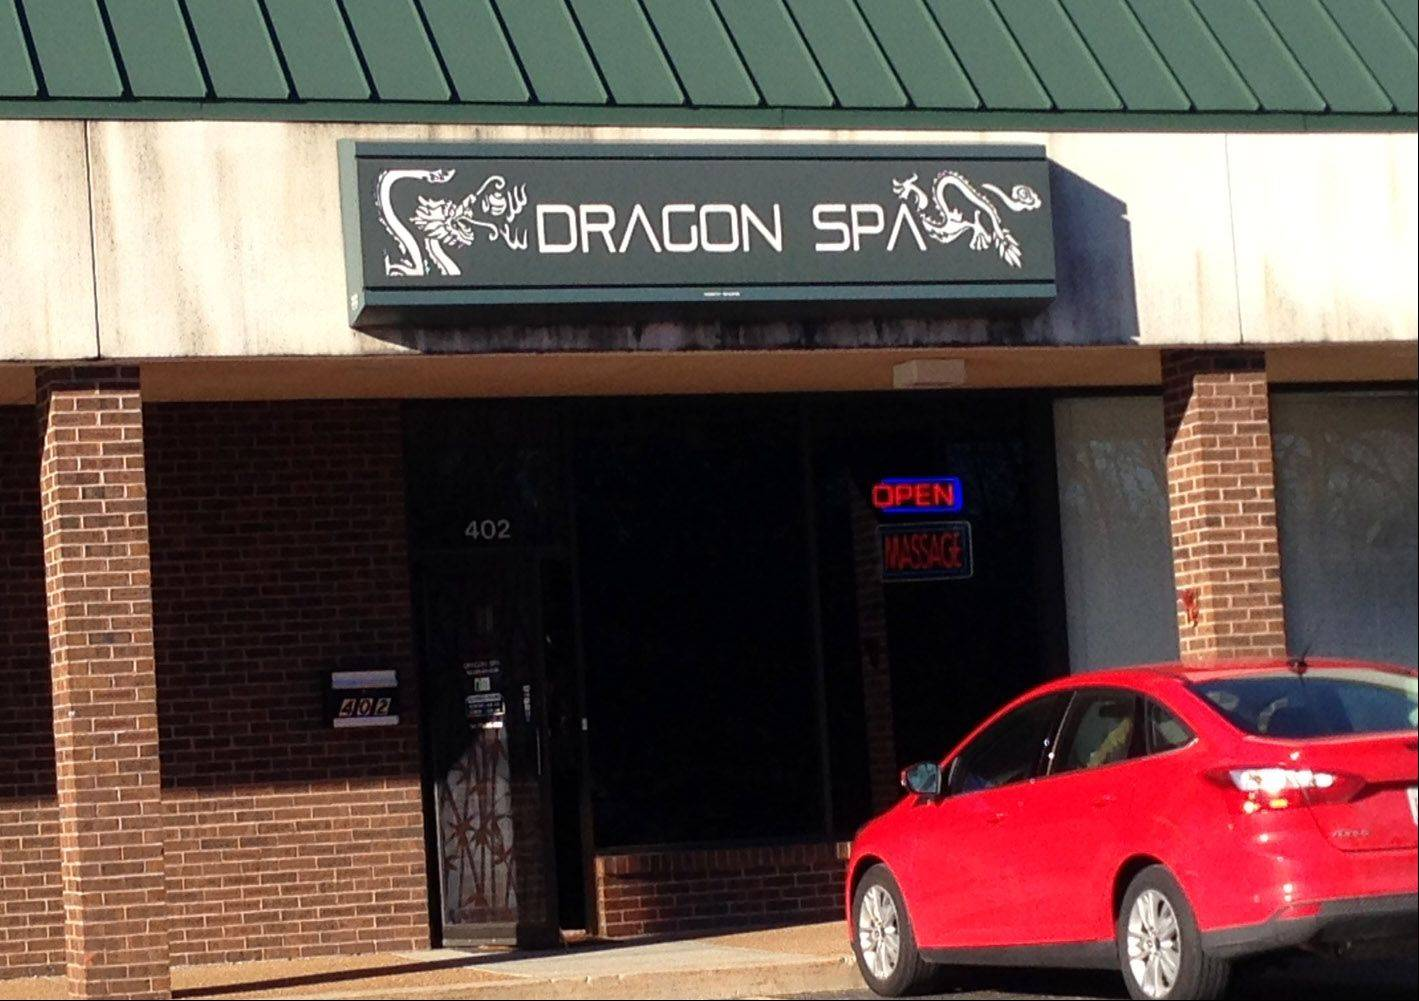 A Chicago woman has been charged with prostitution after offering a sex act to an undercover police officer at the Dragon Spa in Libertyville, authorities said Wednesday.